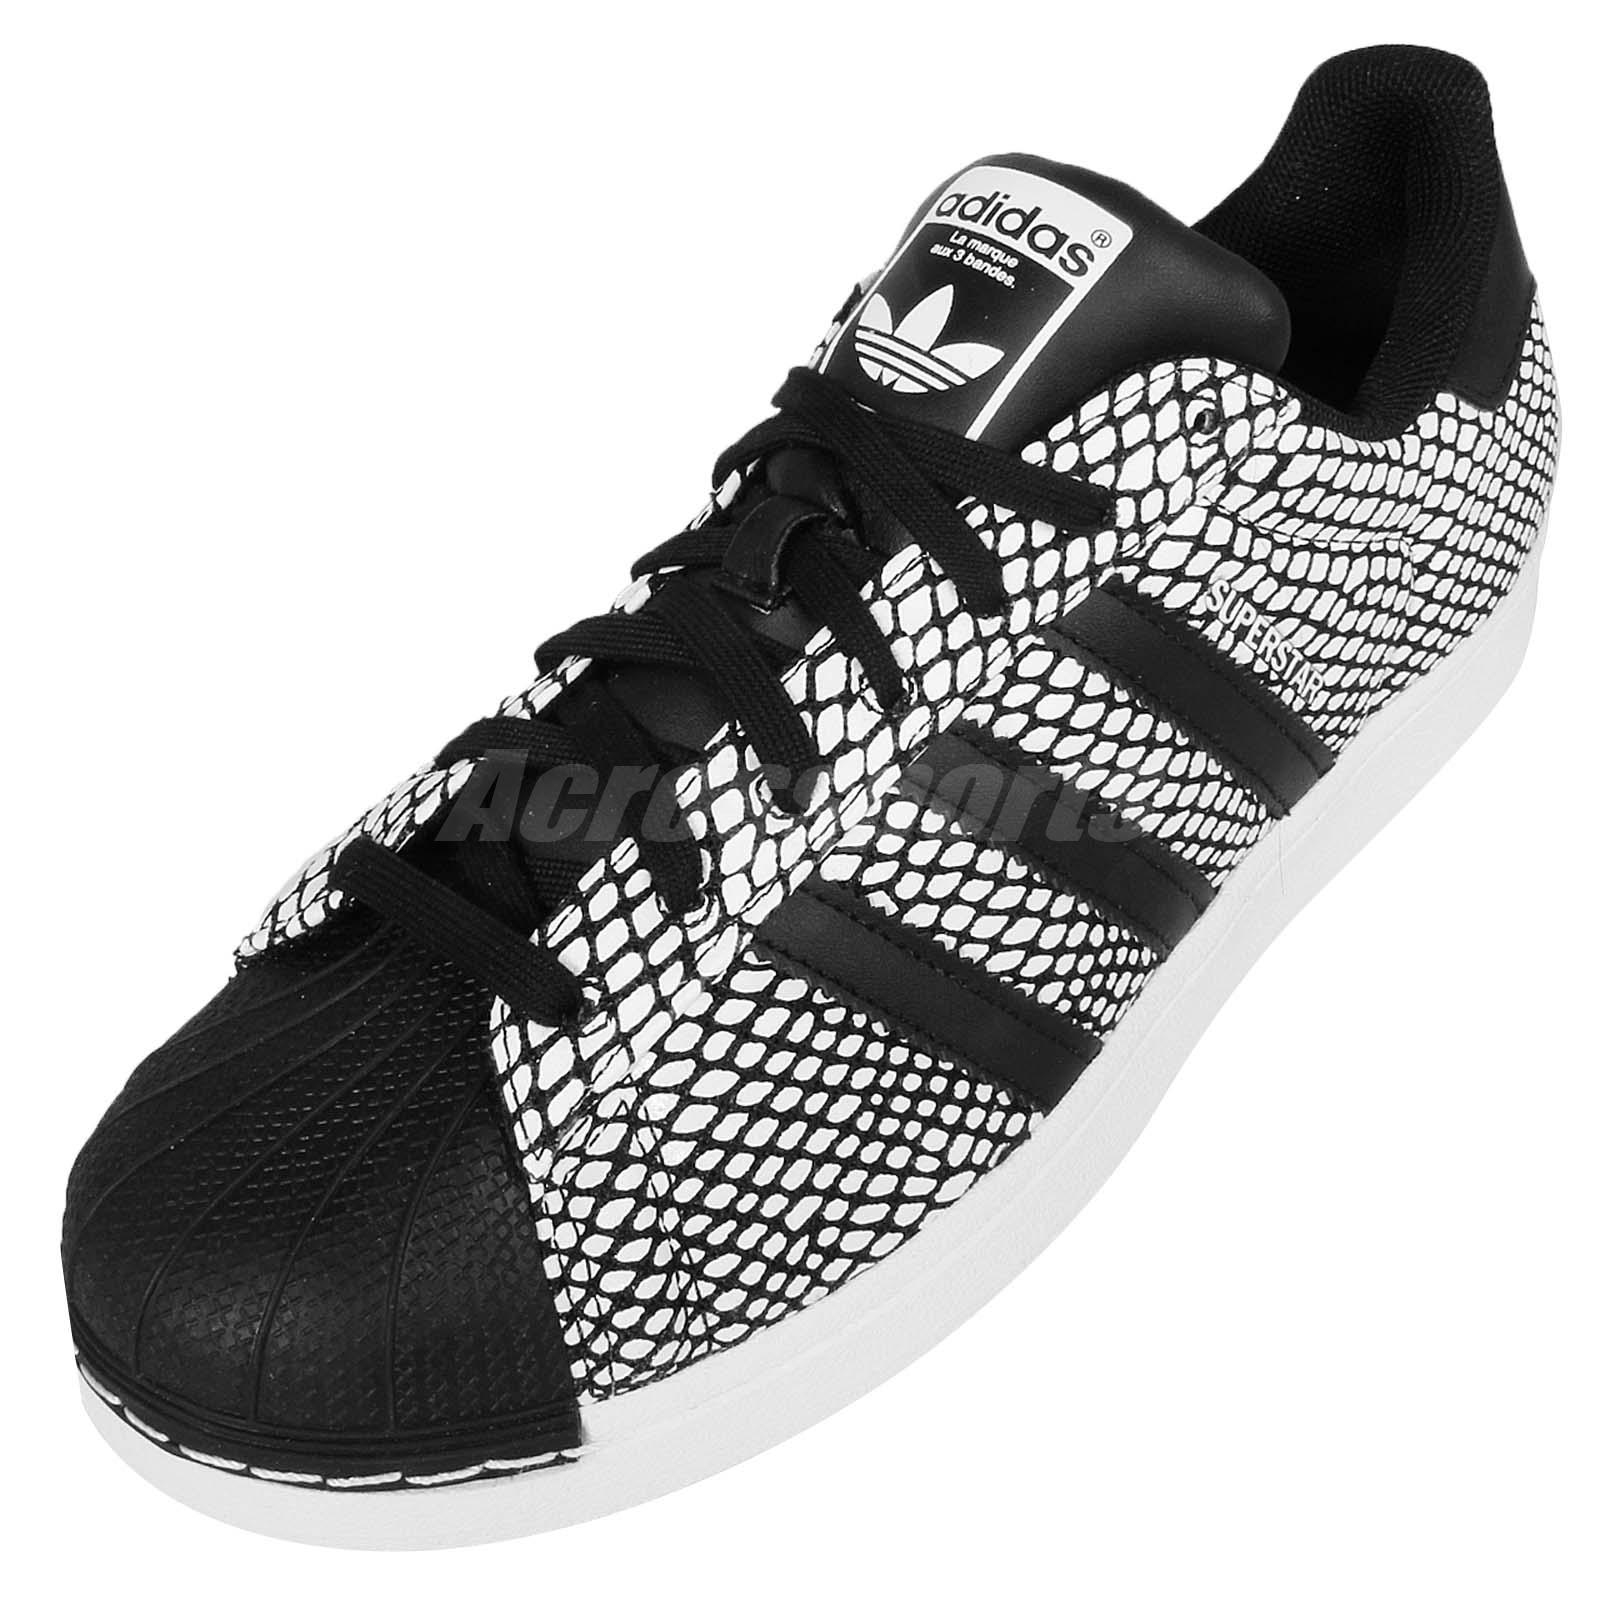 adidas Superstar Snake Pack Black White Snakeskin Classic Shoes Sneakers S81728